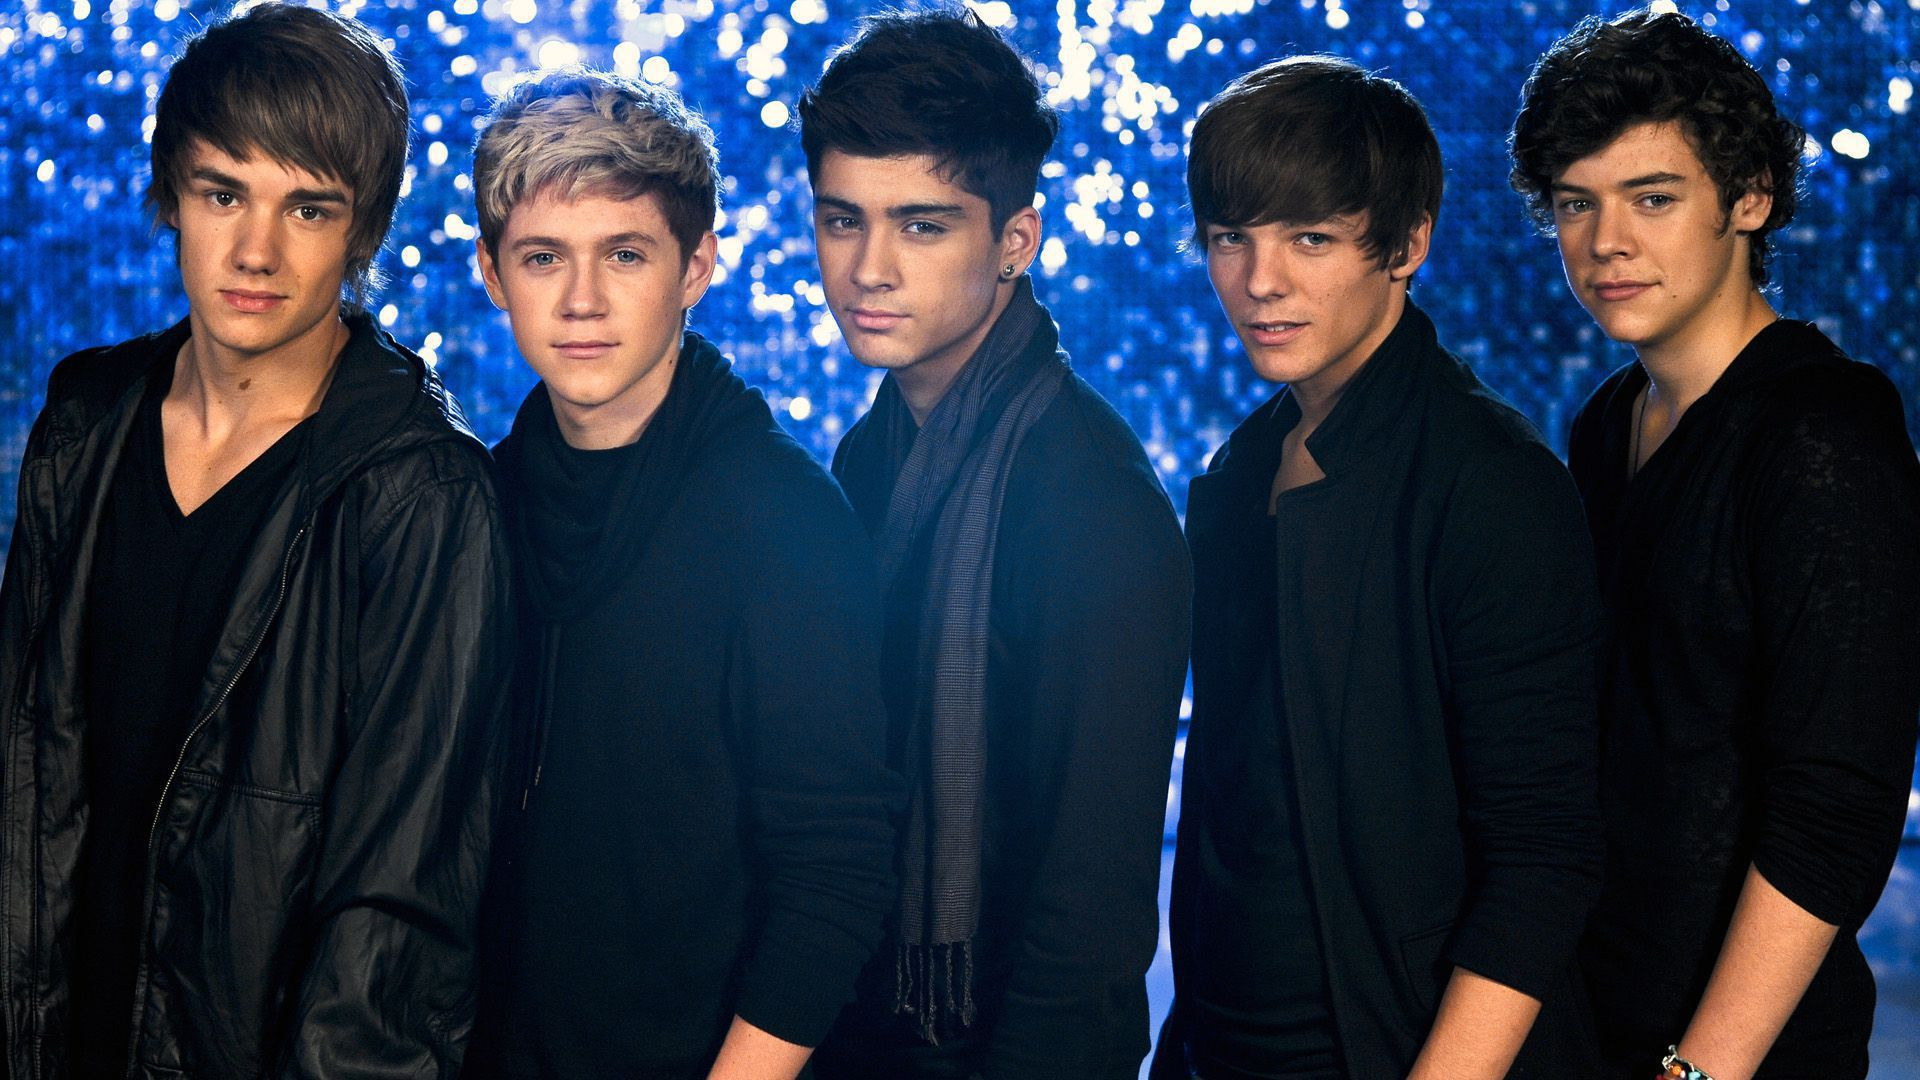 One Direction Wallpapers Backgrounds